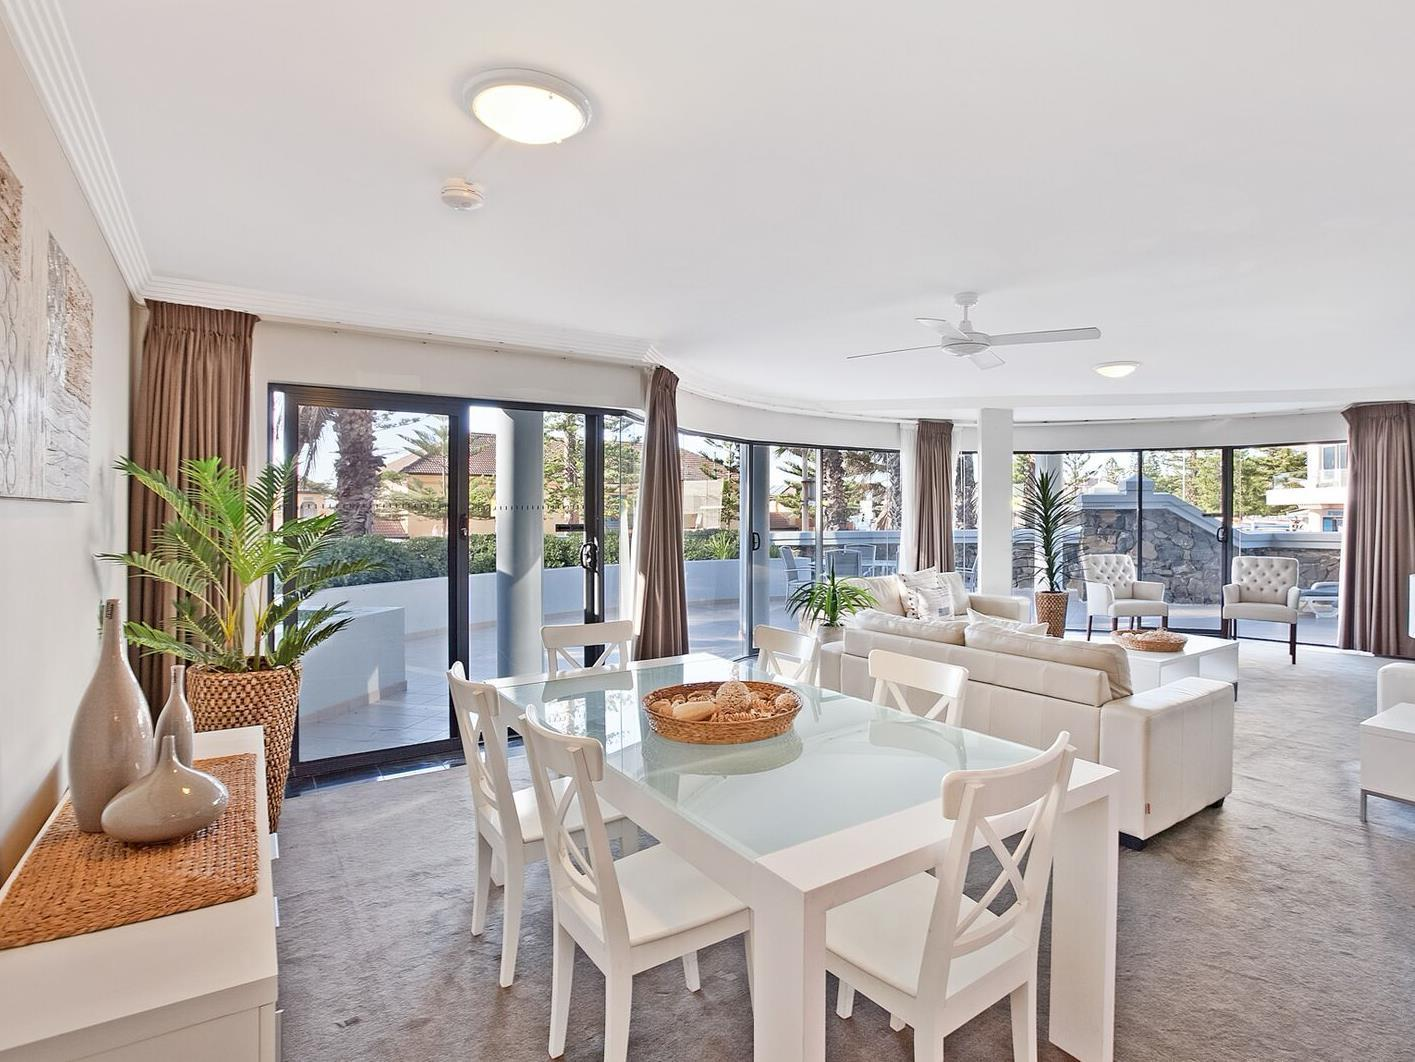 Best Price On Manly Surfside Holiday Apartments In Sydney Reviews